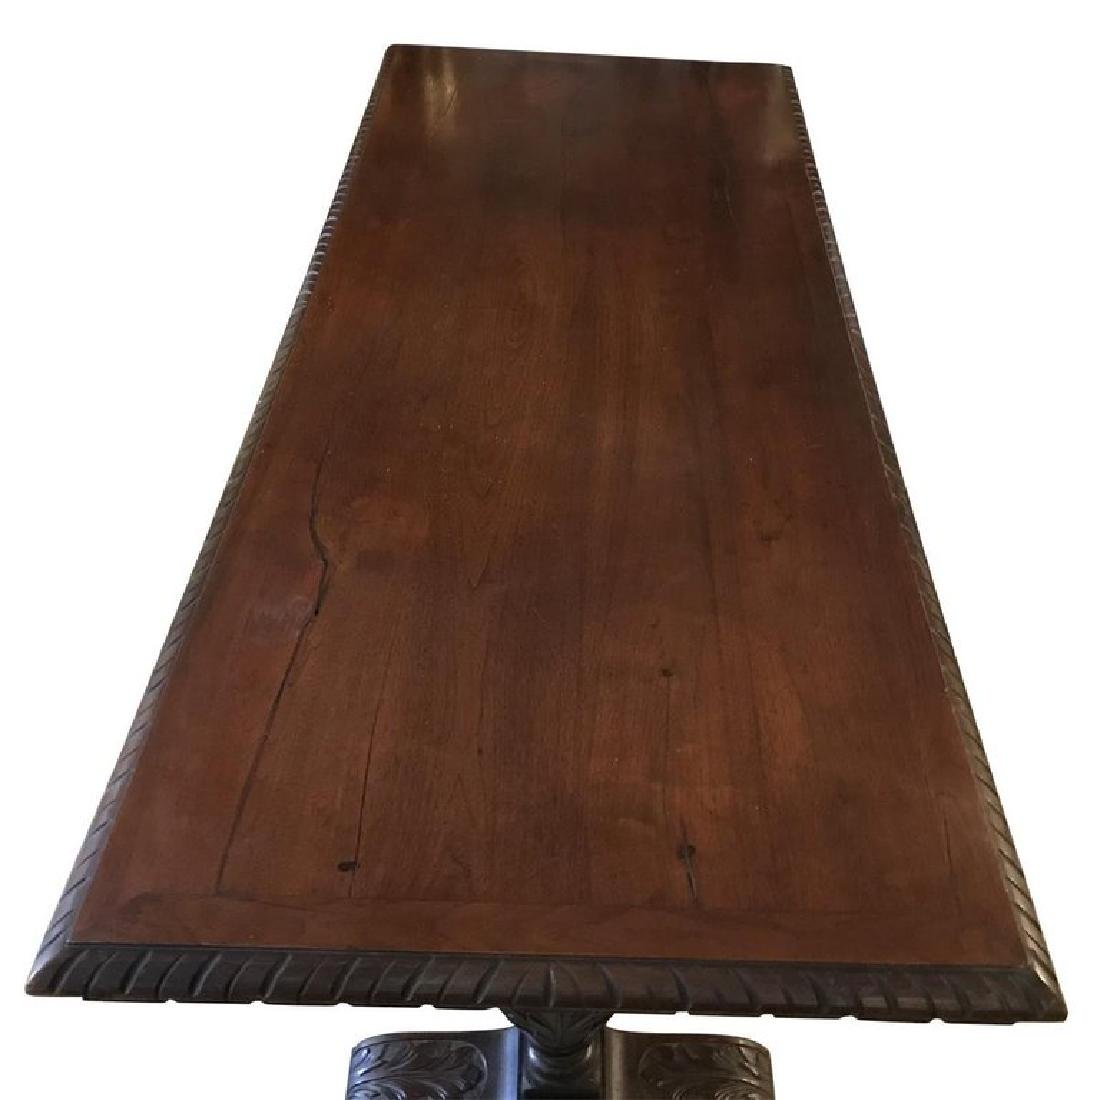 Renaissance Style Carved Walnut Refectory Table - 2